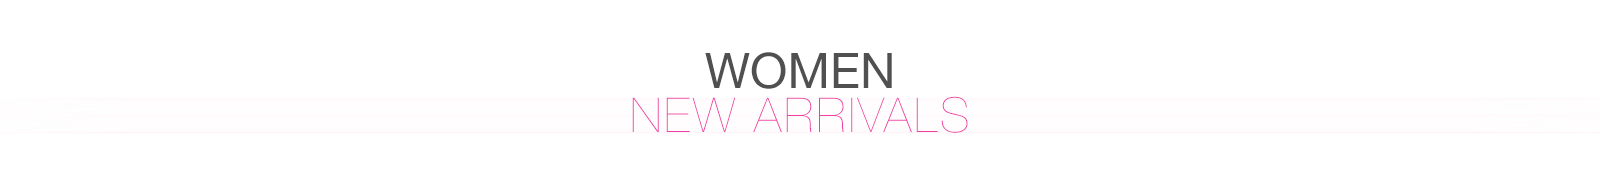 WOMEN - NEW ARRIVALS